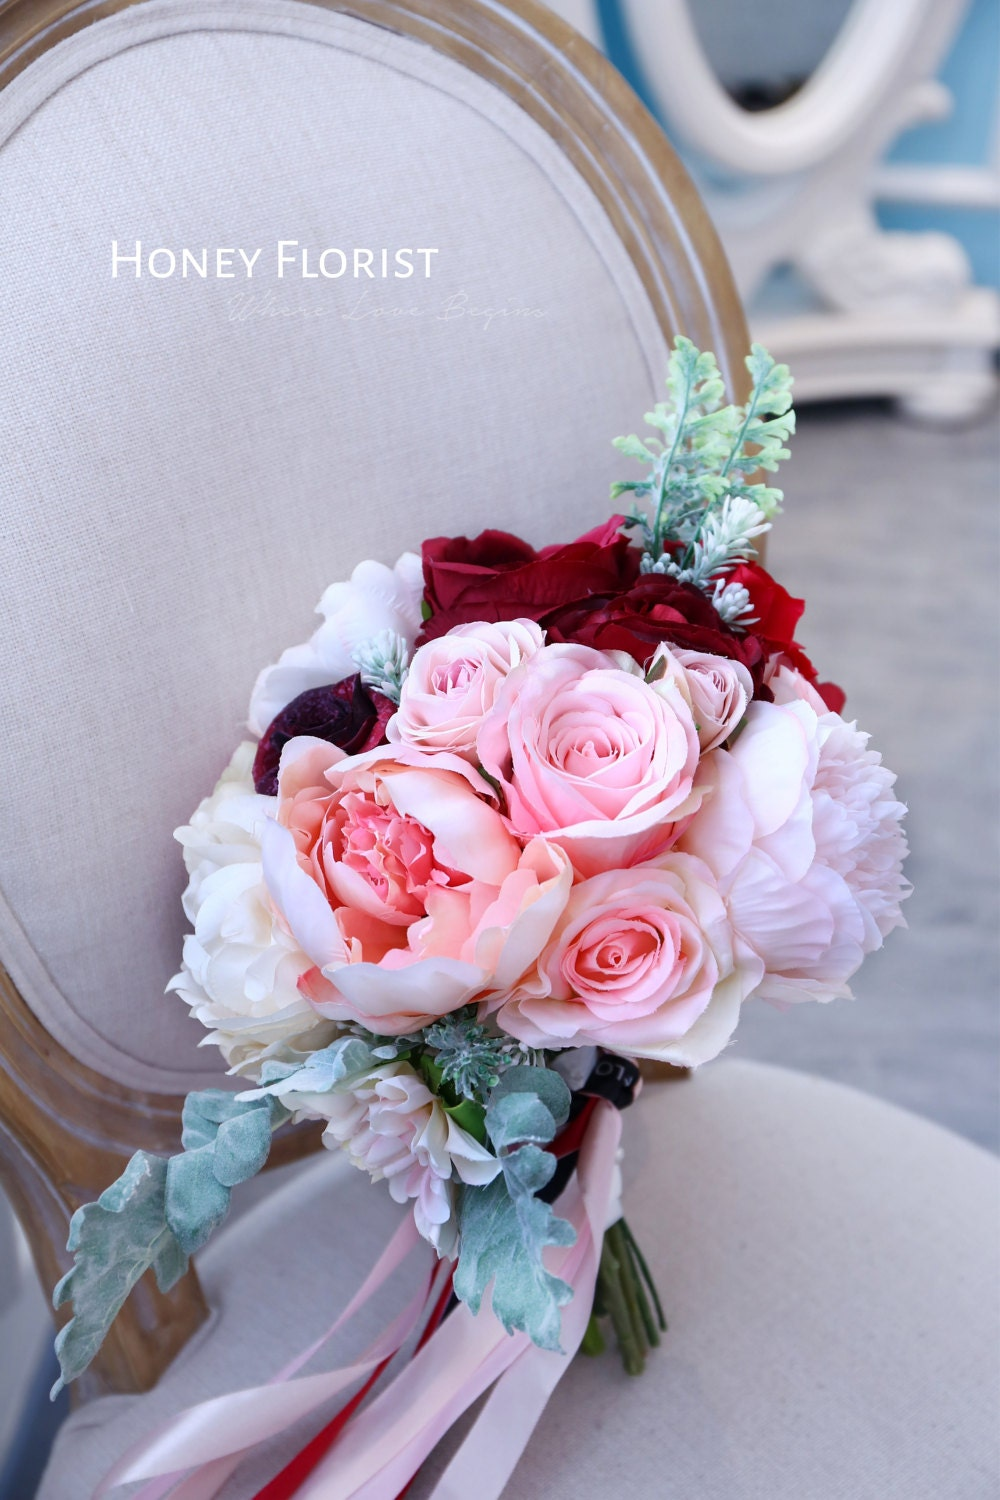 Handmade Custom Red and Pink Mix Color Silk Flower Wedding